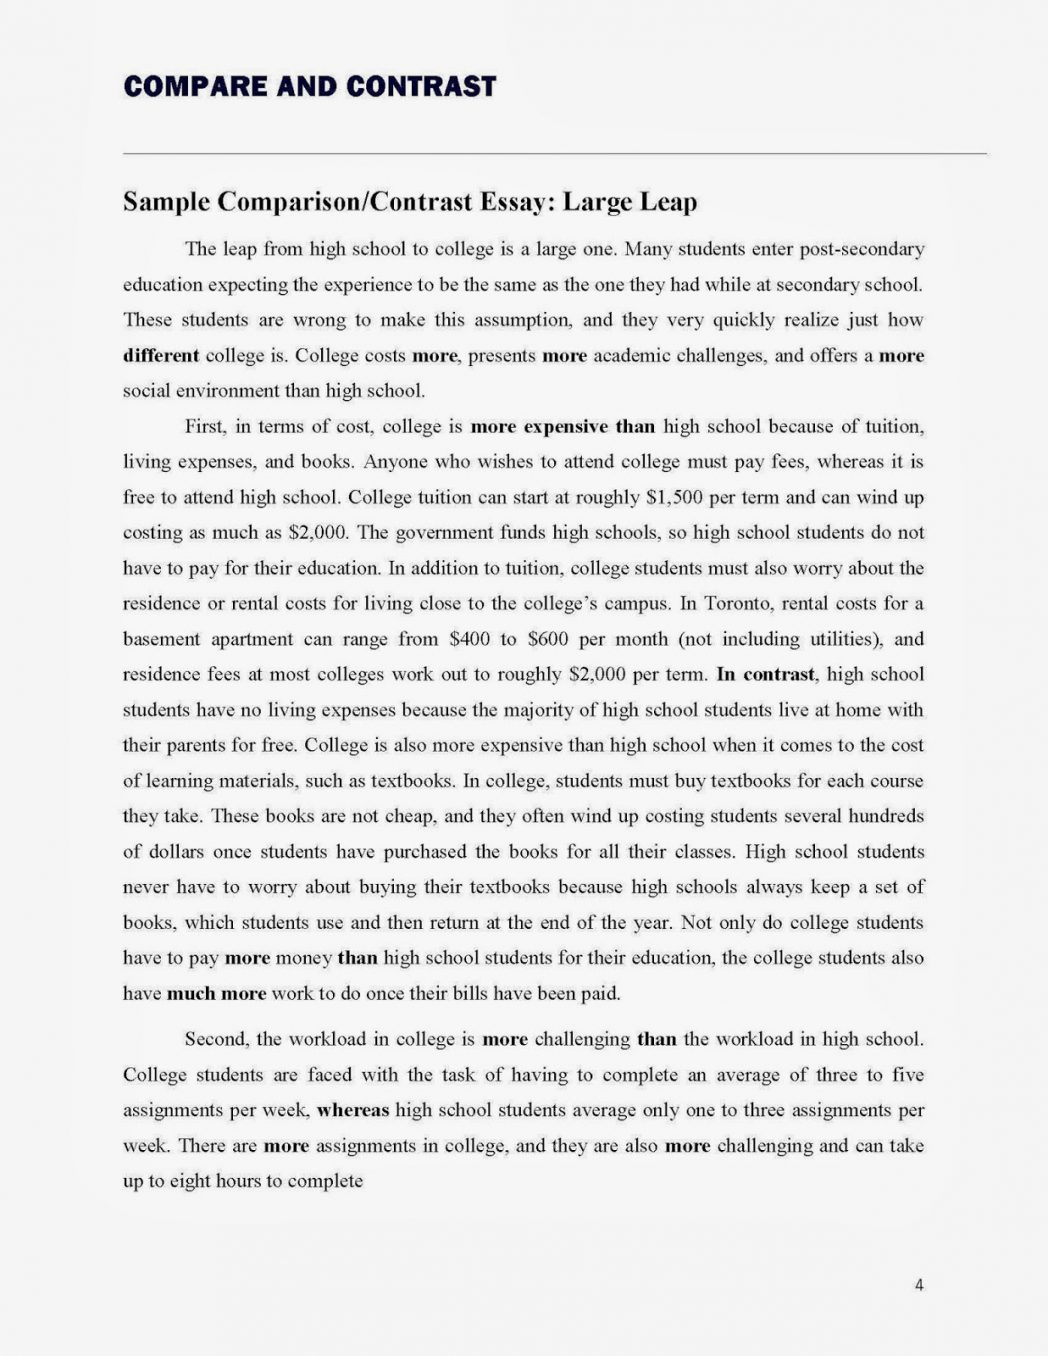 Song comparison essay